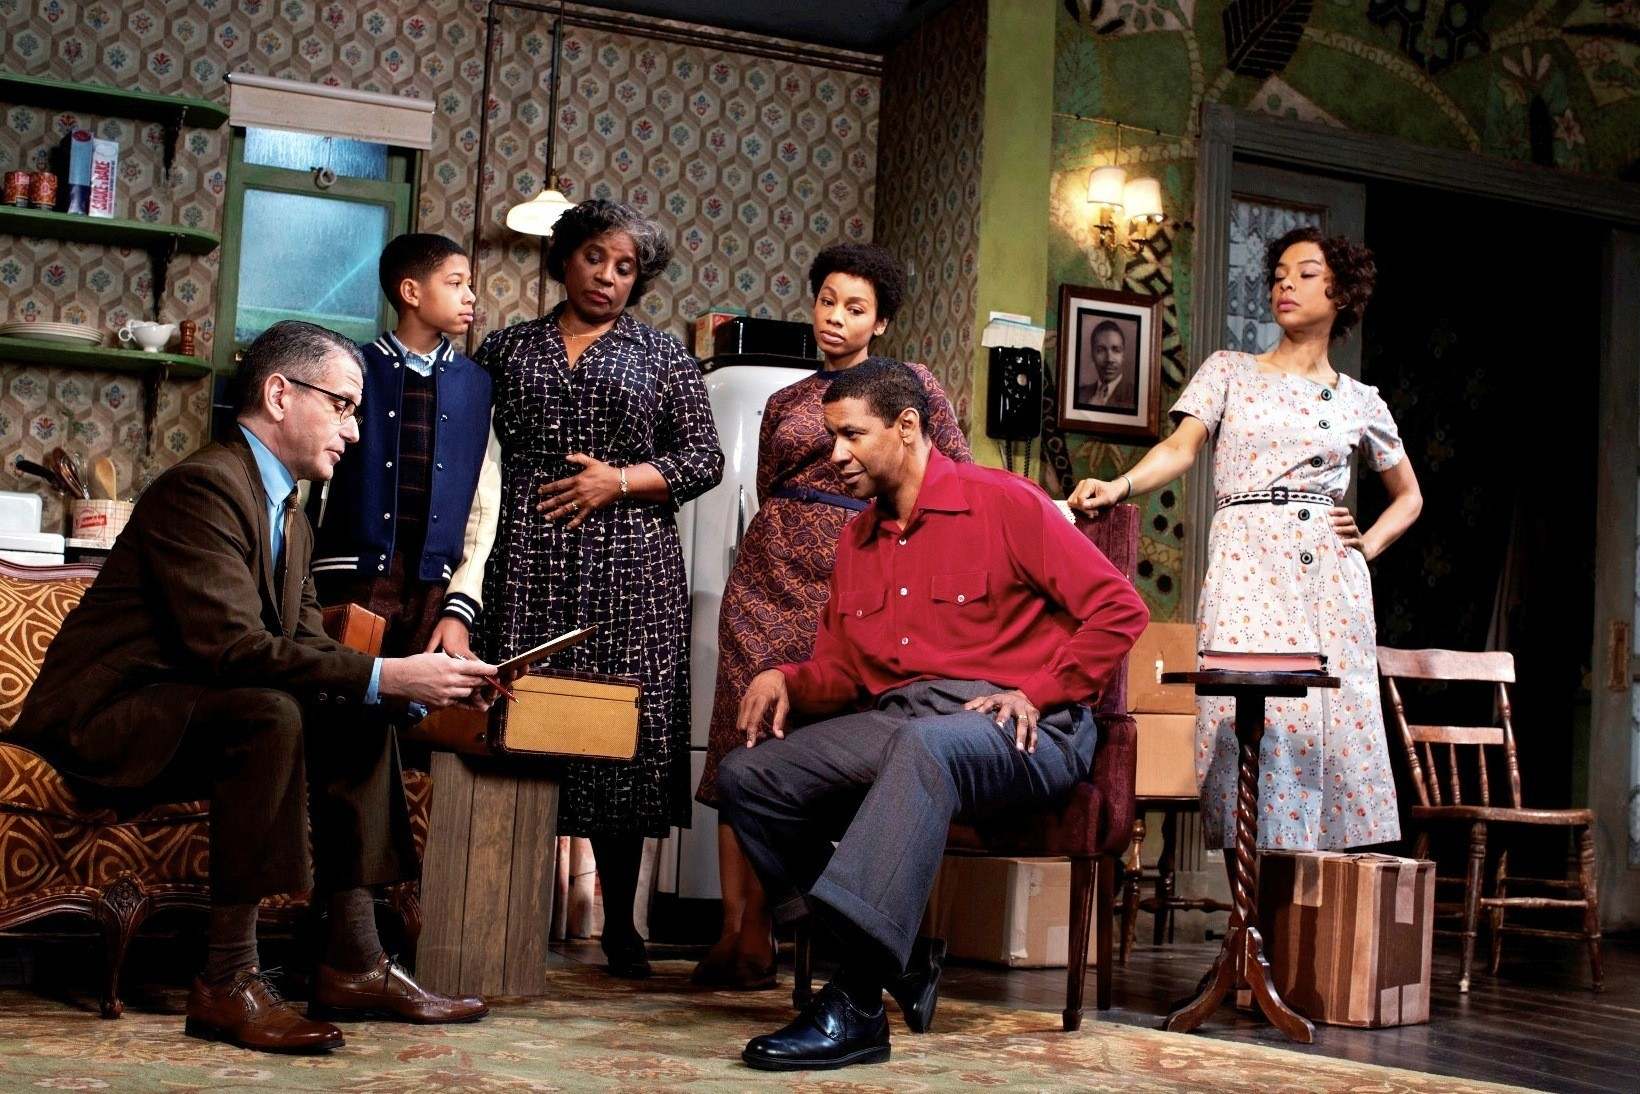 a review of lorraine hansberrys play a raising in the sun Lorraine hansberry was born in chicago on may 19, 1930, and was the youngest  when neighbors struck at them with threats of violence and legal action, the hansberrys defended themselves hansberry's father filed a lawsuit and successfully brought his case all the  and conflicts in a natural and realistic manner, a raisin in the sun received the new york drama critics' circle award for best play of the year hansberry was the youngest playwright, the fifth woman, and the only black.